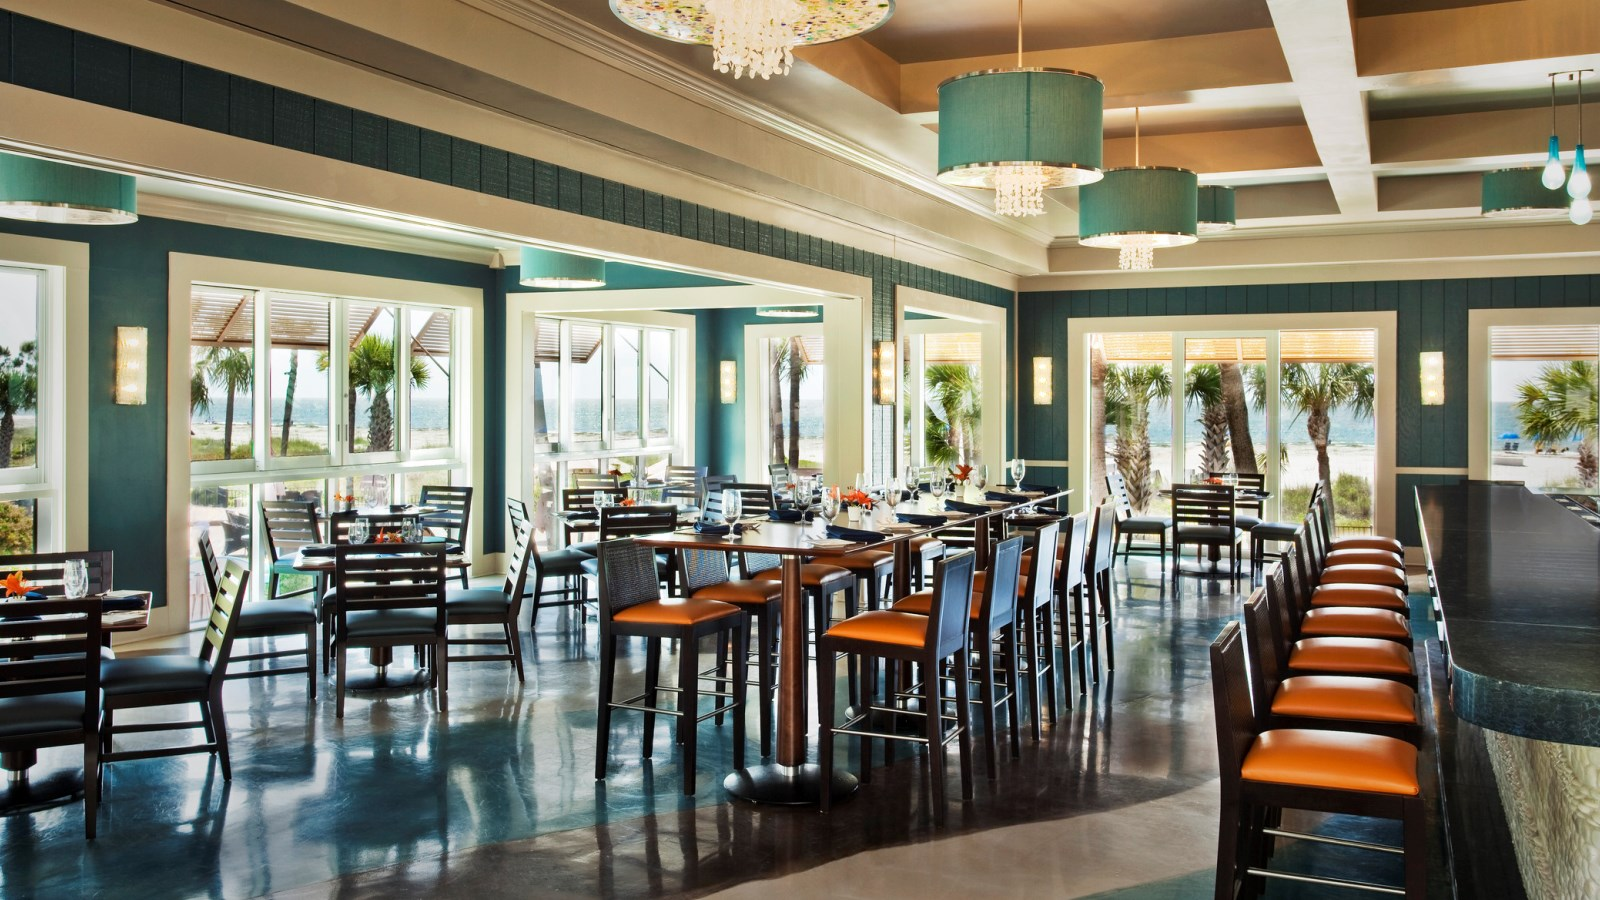 Hilton Head Restaurants - Oceans